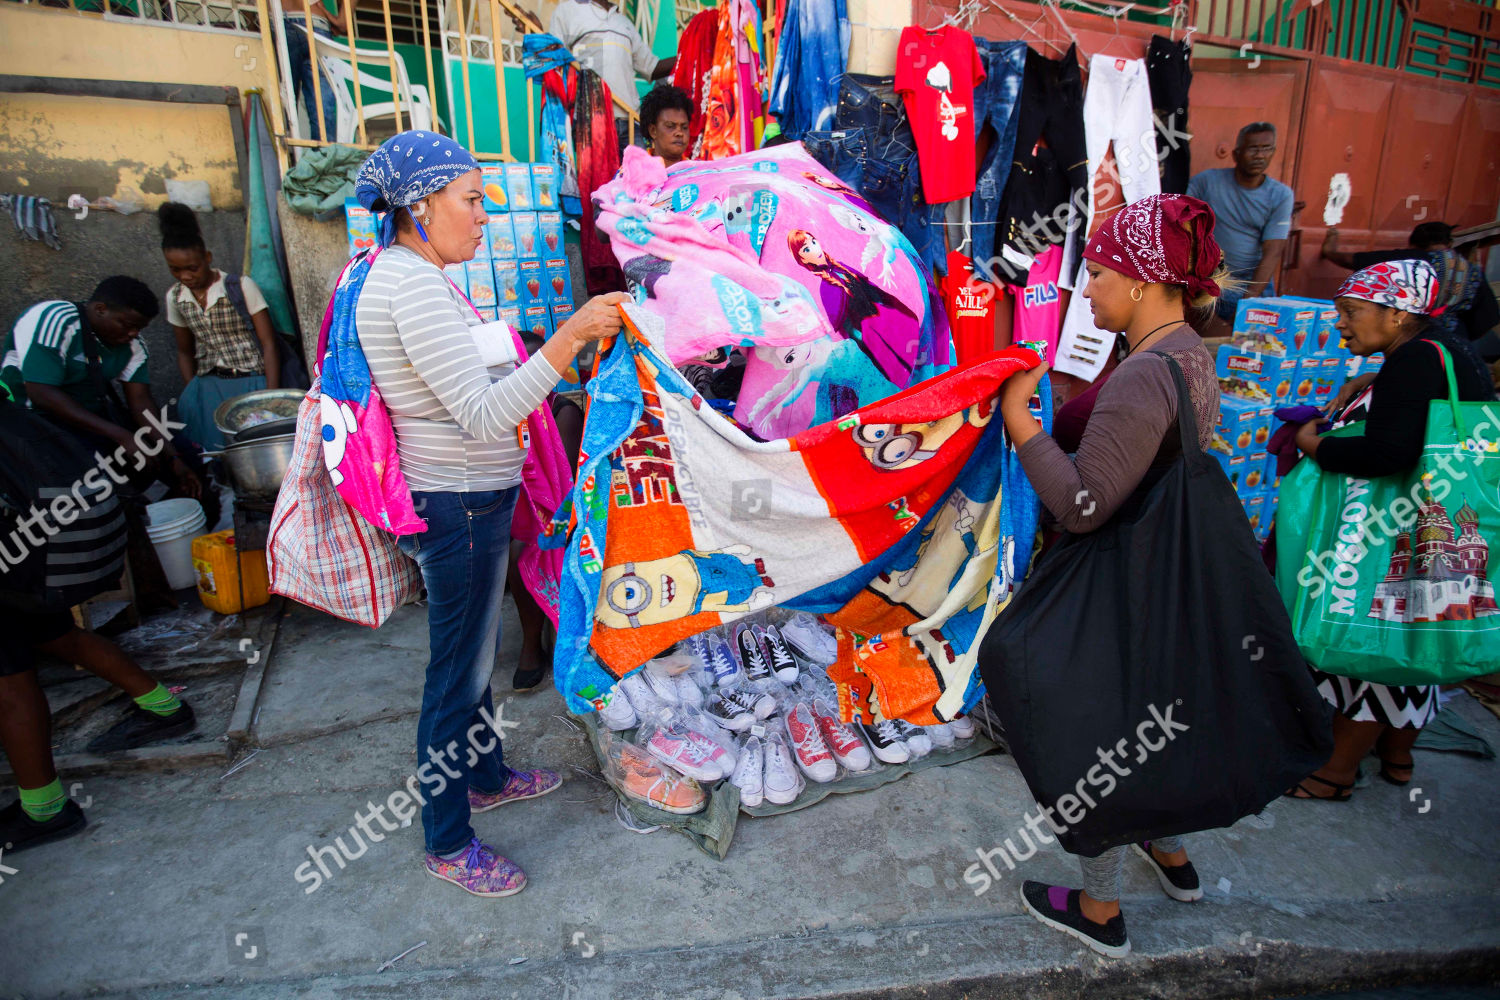 Shopping Com Au Cuban Shoppers Hold Bed Cover They Shop Editorial Stock Photo